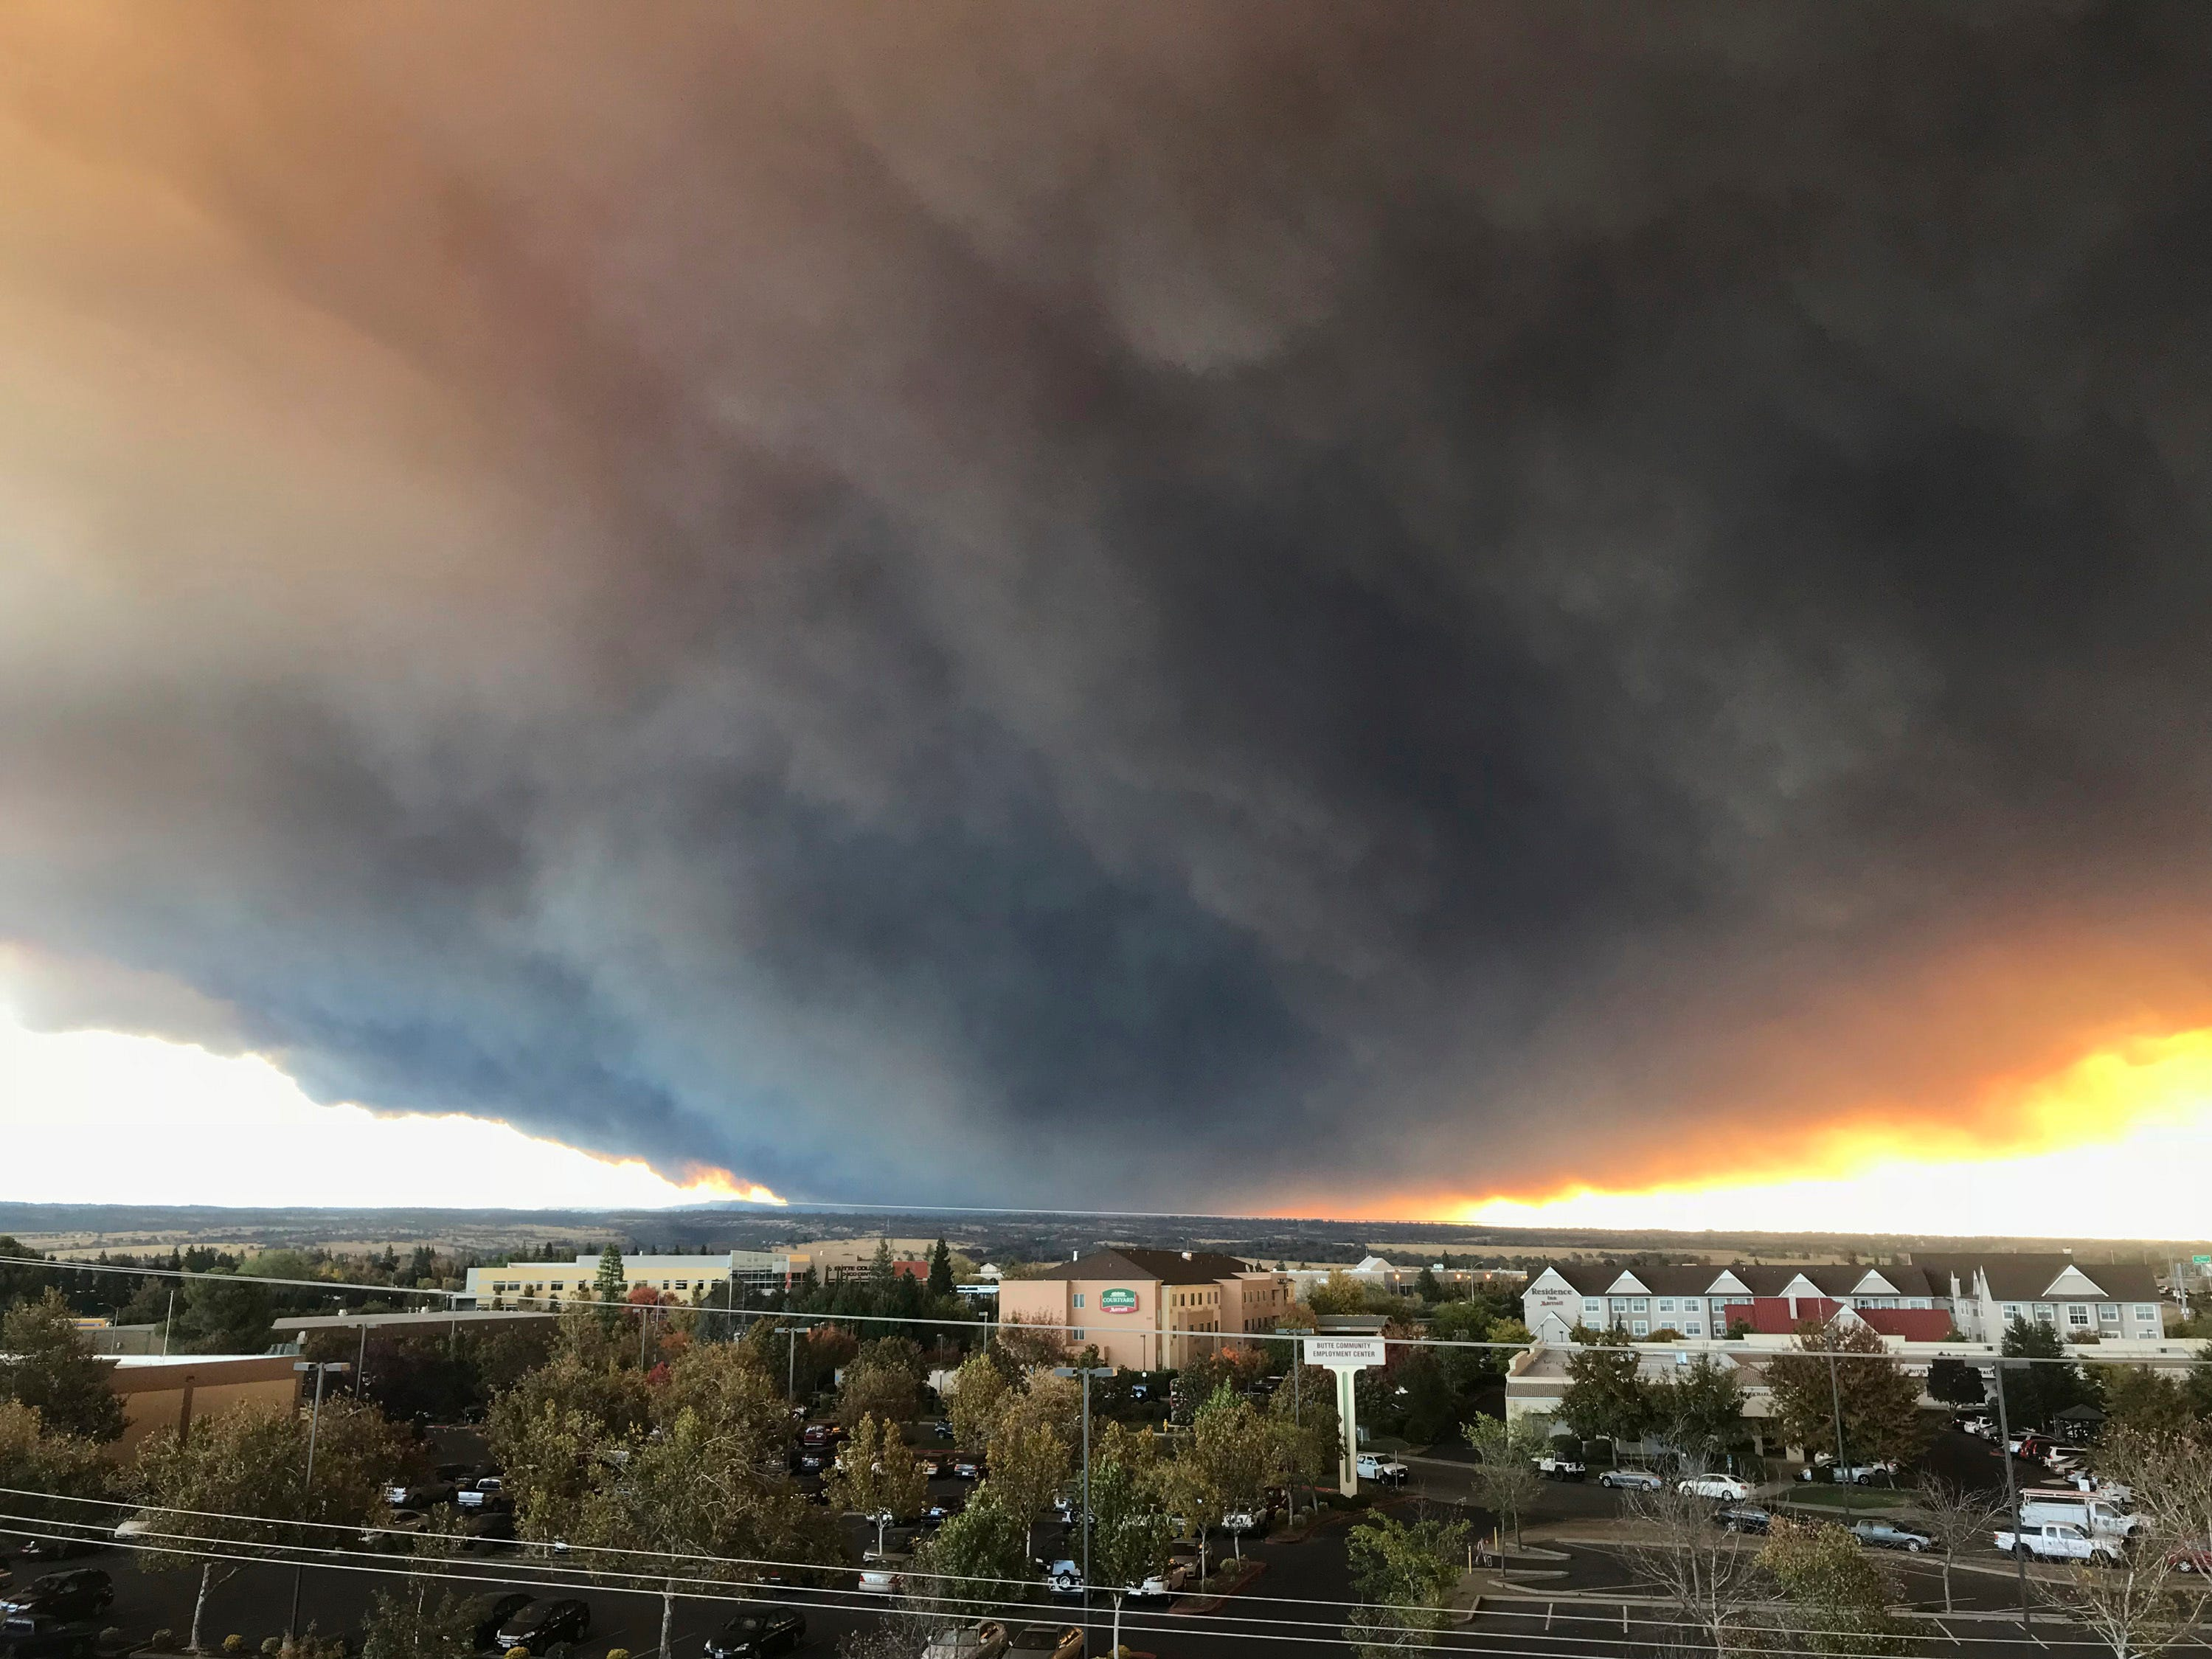 The massive plume from the Camp Fire, burning in the Feather River Canyon near Paradise, Calif., wafts over the Sacramento Valley as seen from Chico, Calif., on Nov. 8, 2018.